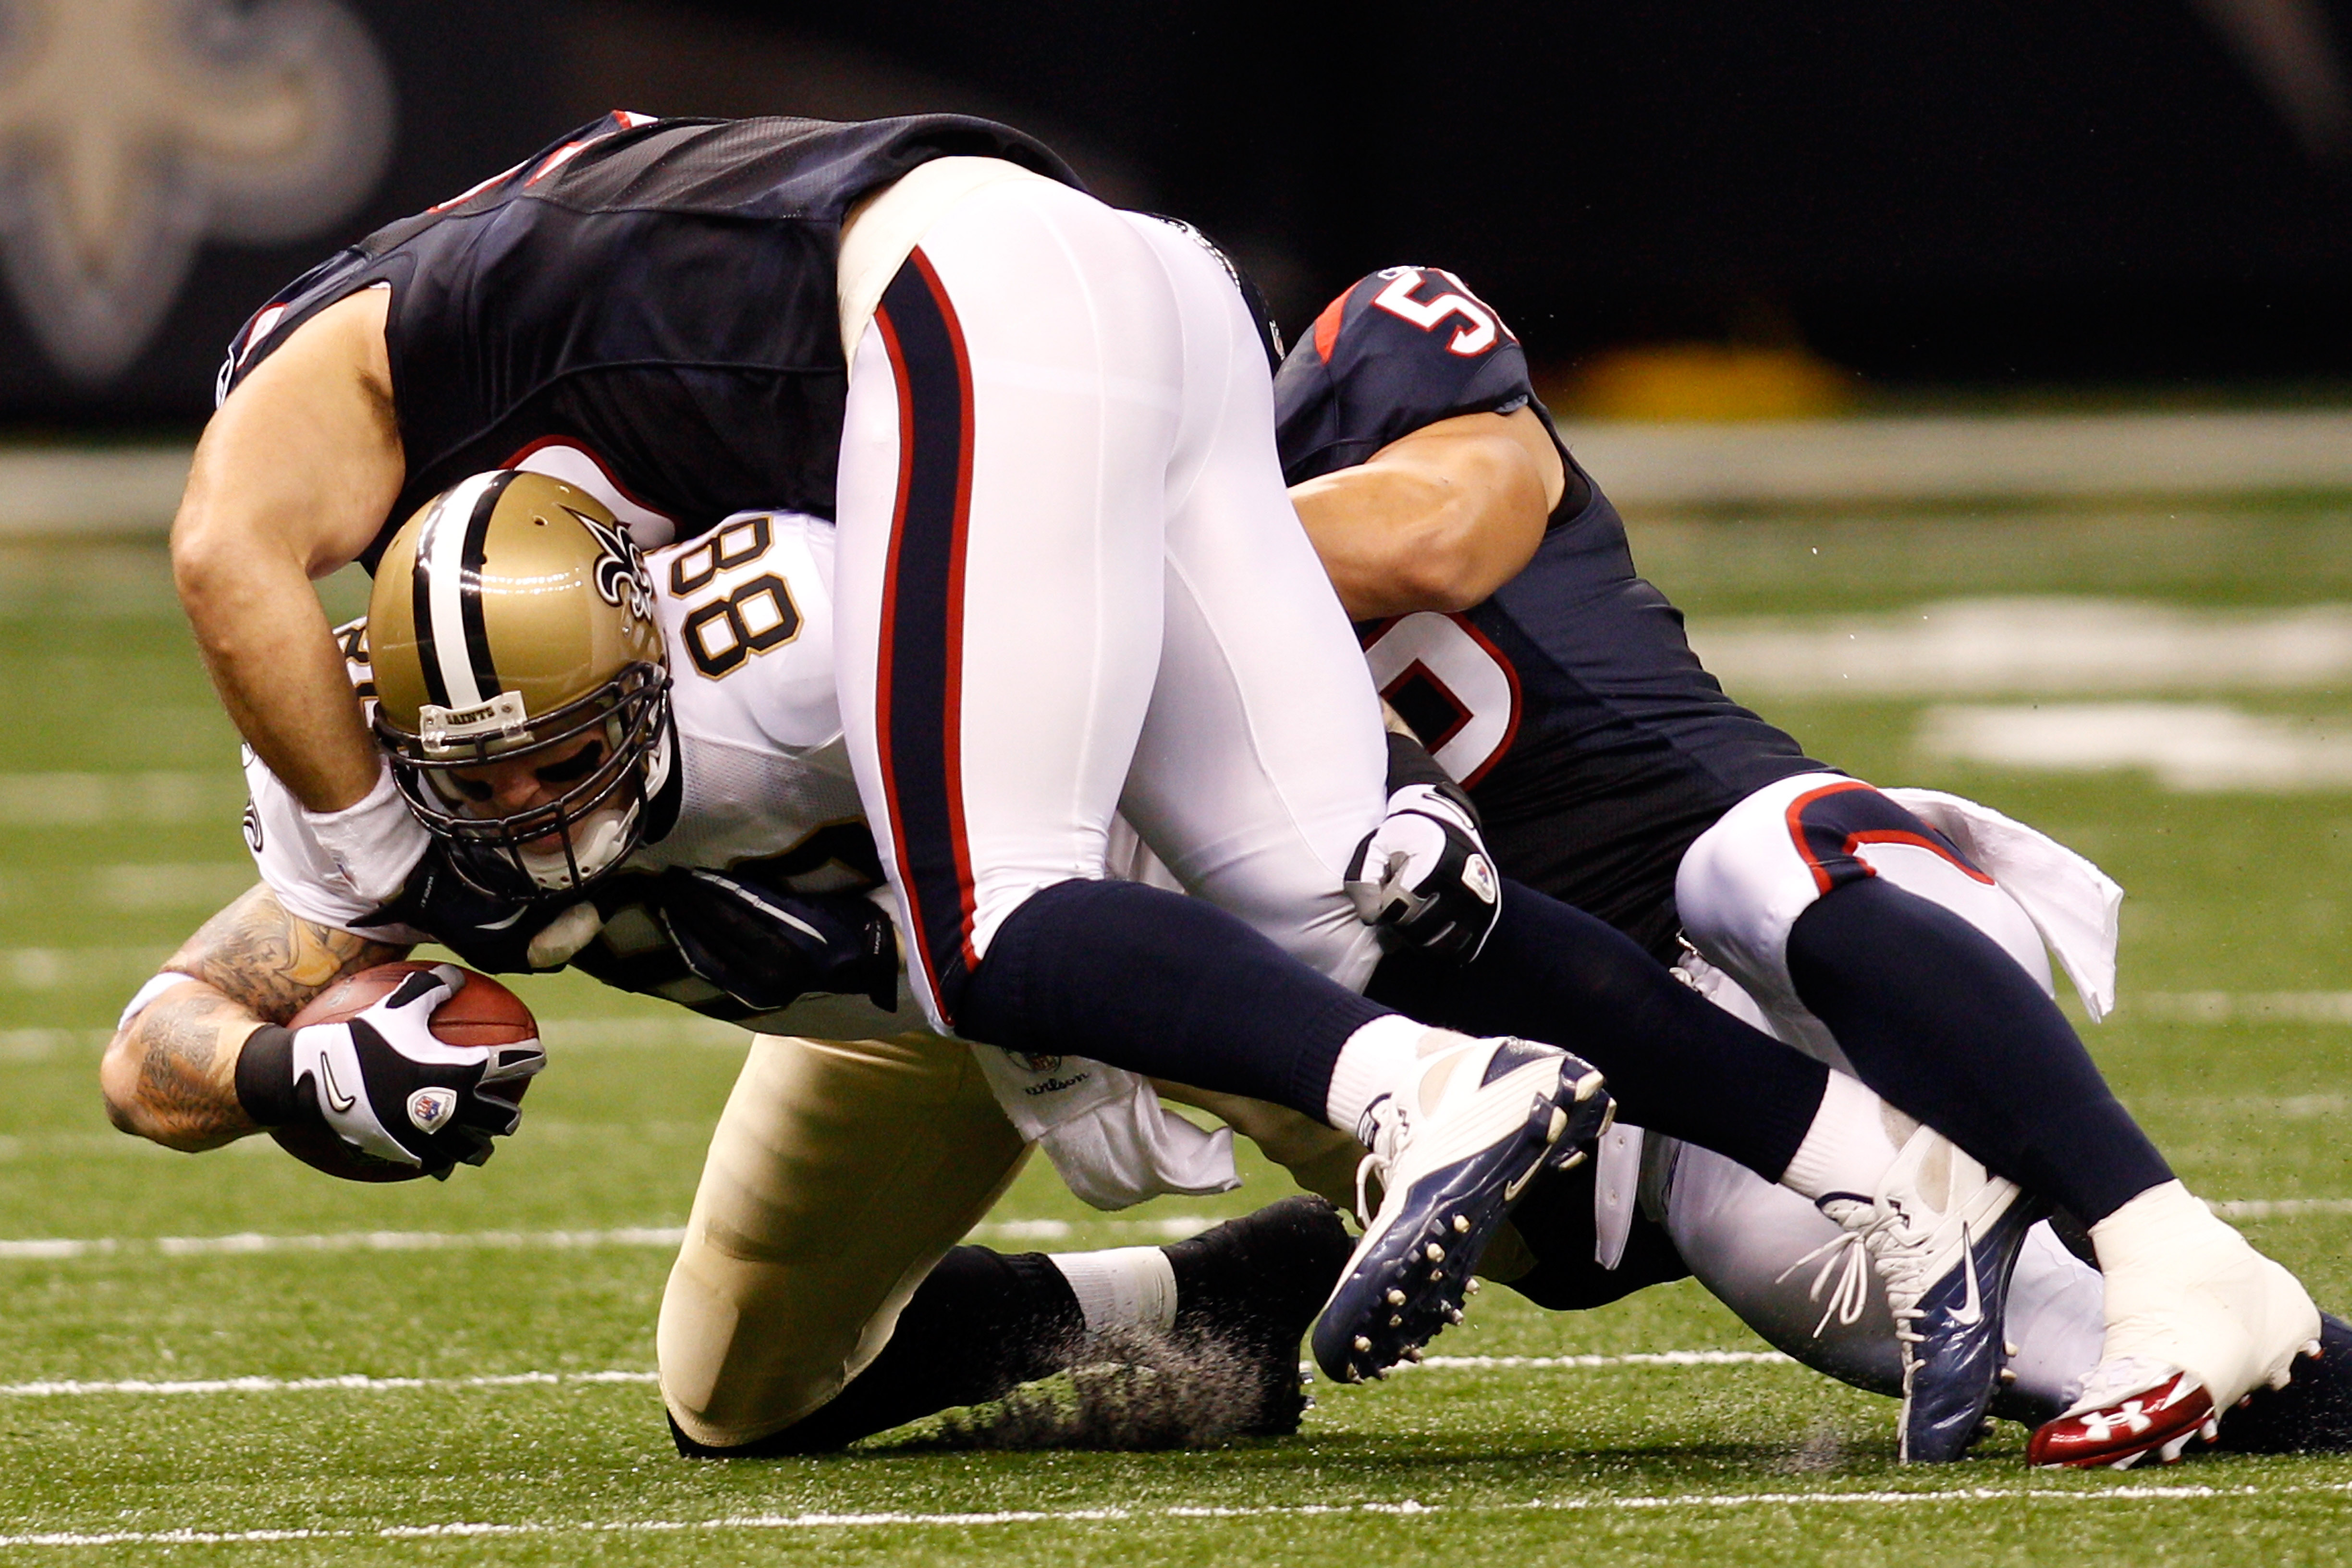 NEW ORLEANS - AUGUST 21:  Jeremy Shockey #88 of the New Orleans Saints is tackled by Connor Barwin #98 and Brian Cushing # 56 of the Houston Texans at the Louisiana Superdome on August 21, 2010 in New Orleans, Louisiana.  (Photo by Chris Graythen/Getty Im